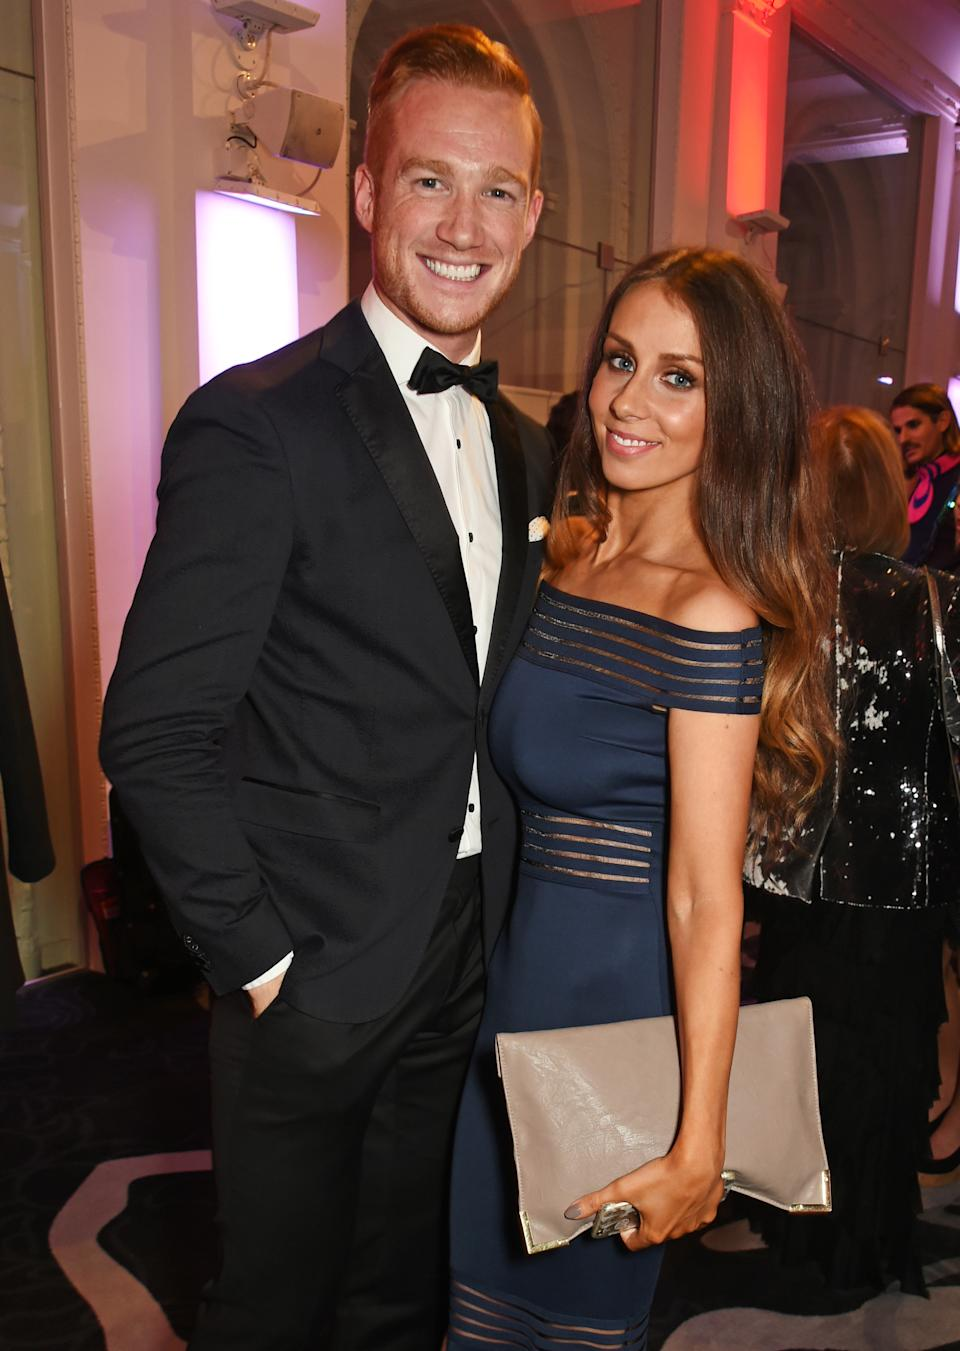 Greg Rutherford's fiancée Susie Verrill has opened up about her experiences of hyperemesis during her third pregnancy, pictured here in 2016. (Getty Images)